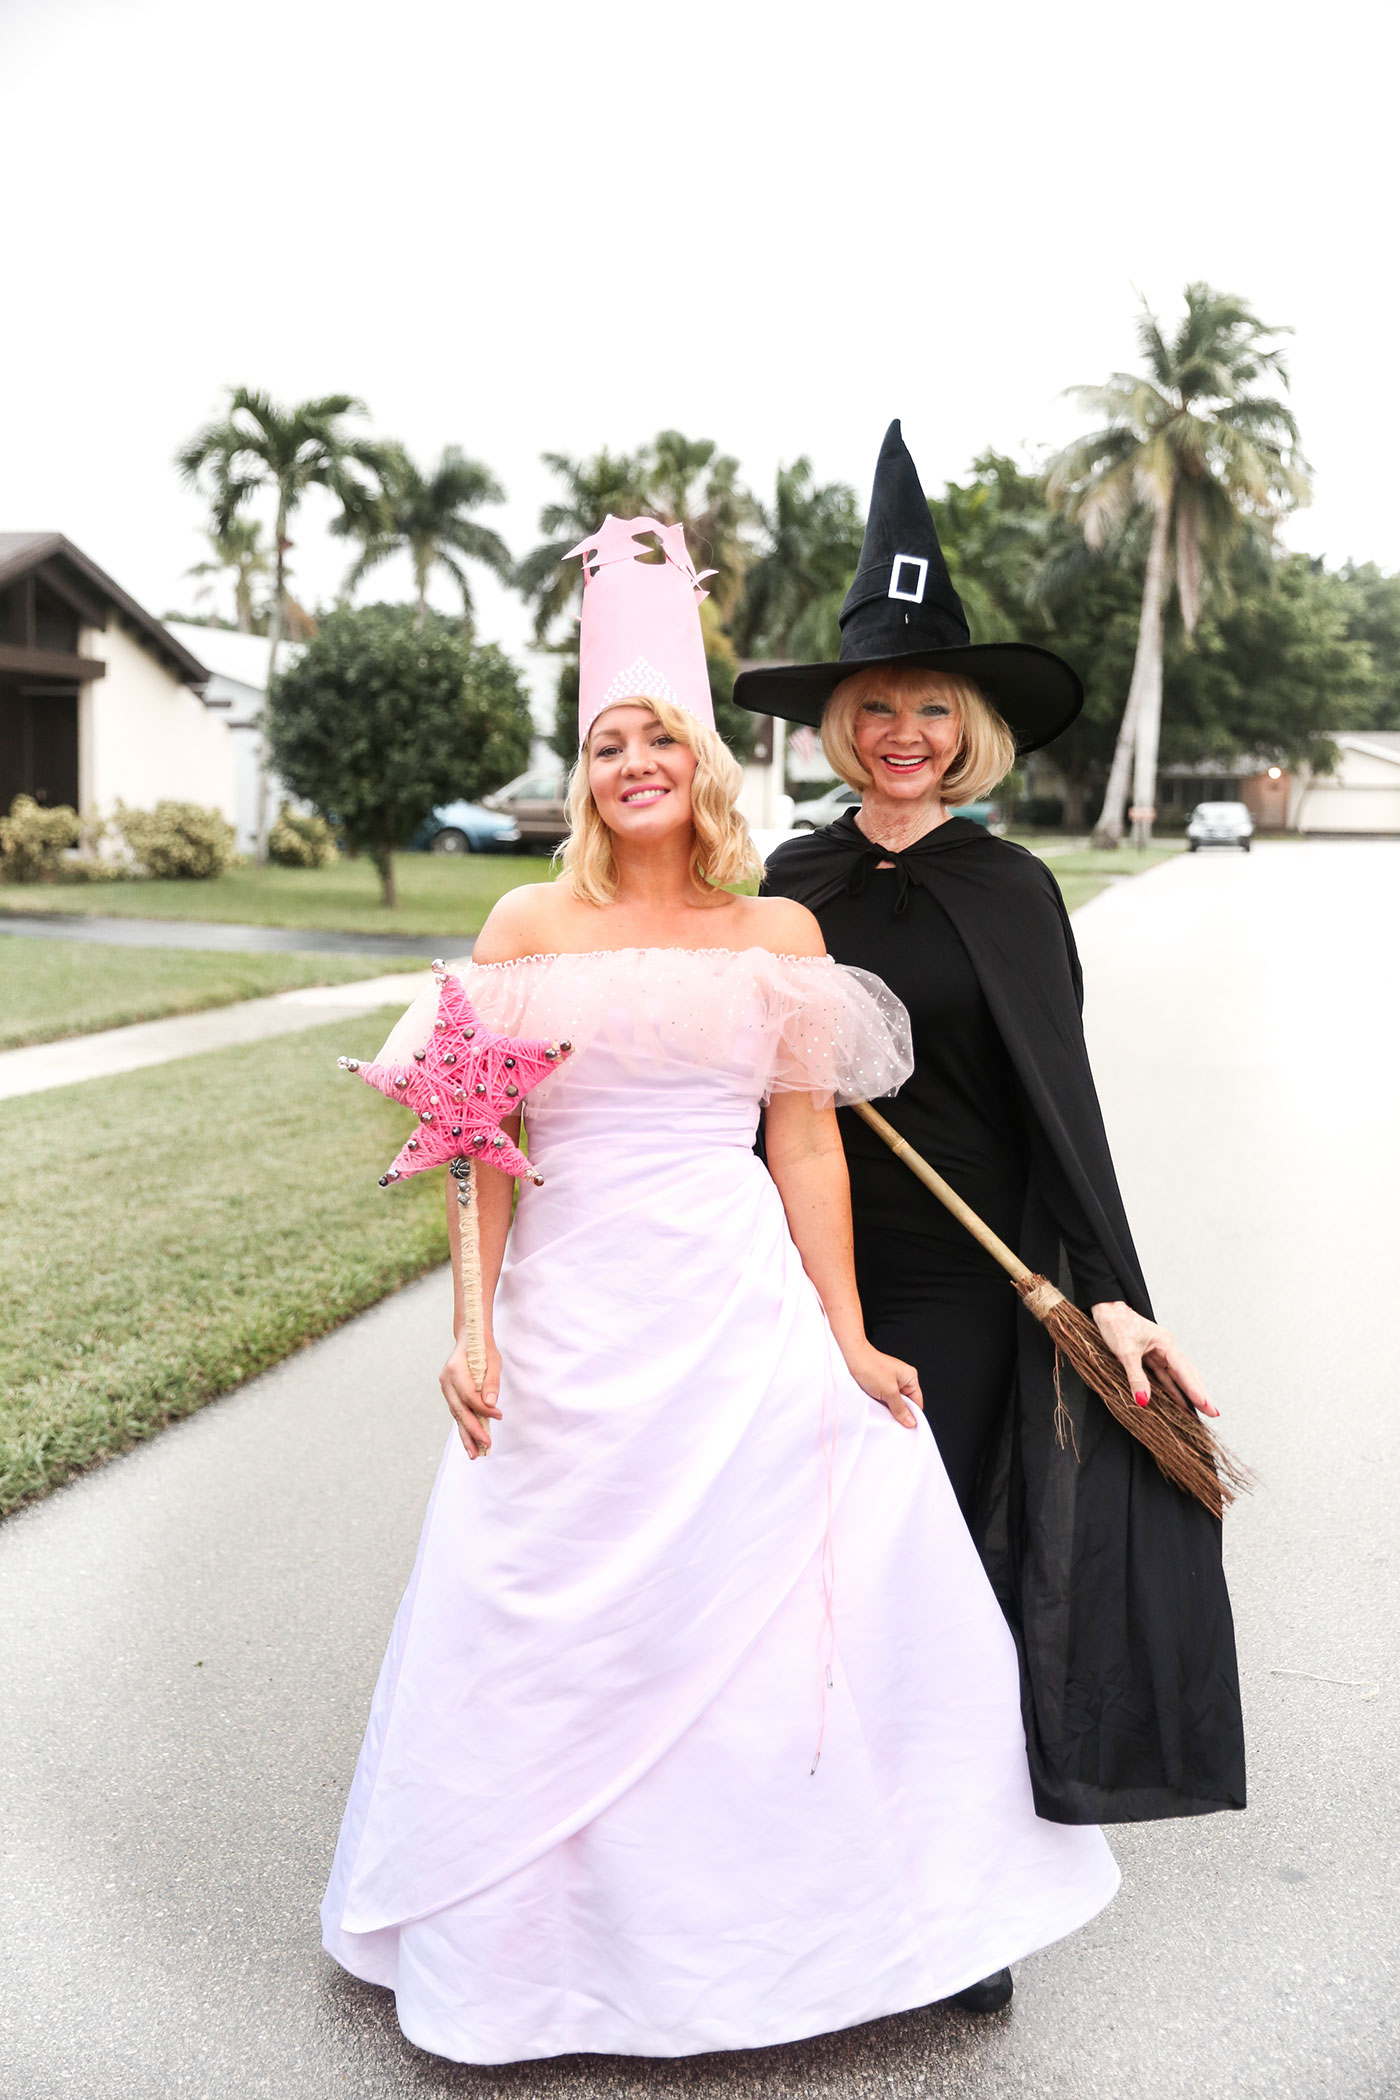 Glinda The Good Witch and The Wicked Witch Of The West costumes